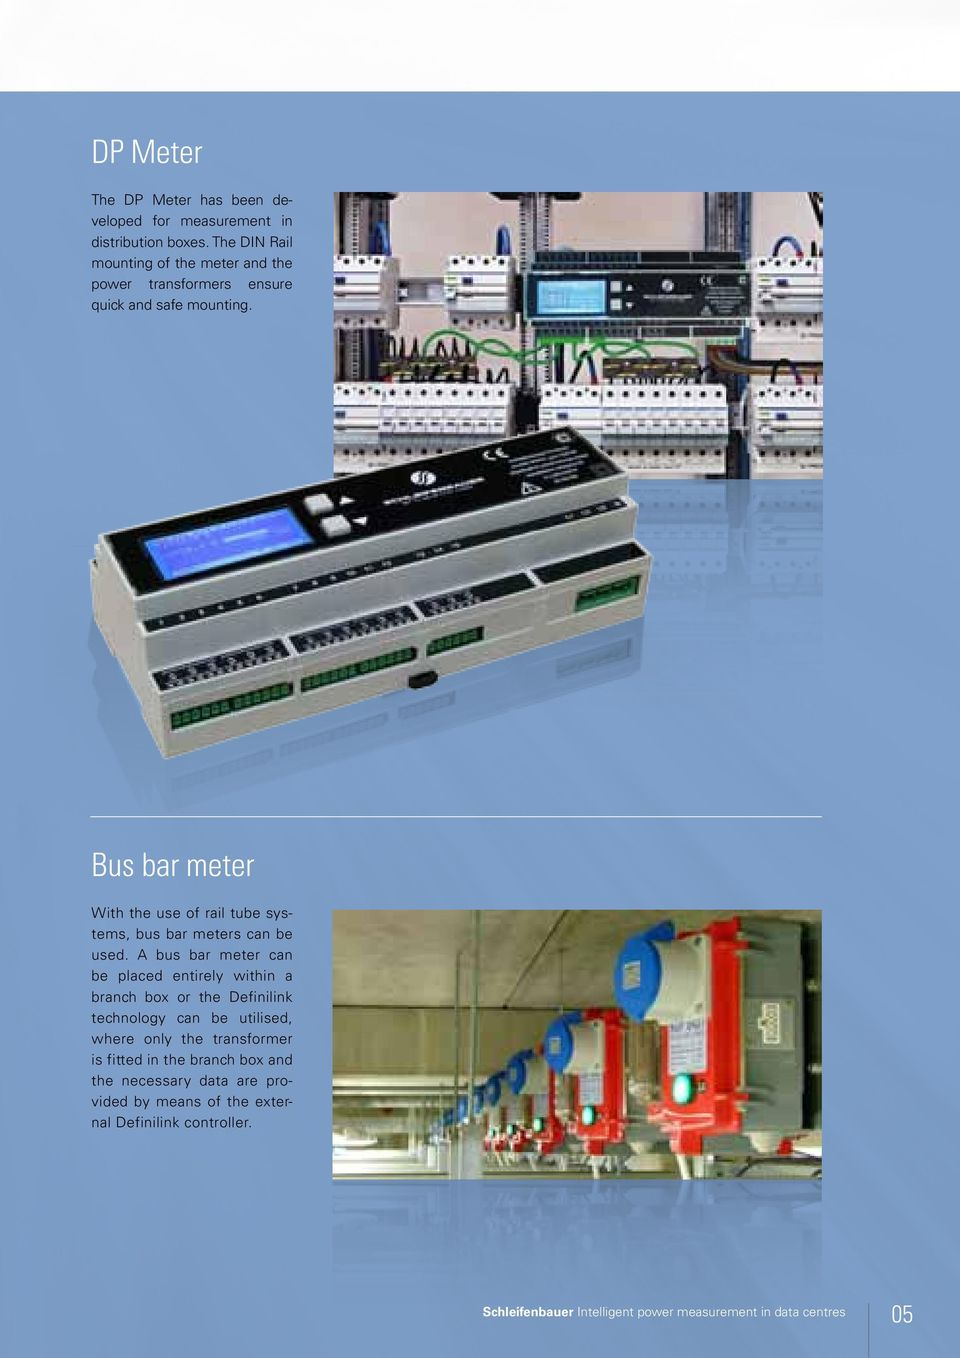 Bus bar meter With the use of rail tube systems, bus bar meters can be used.